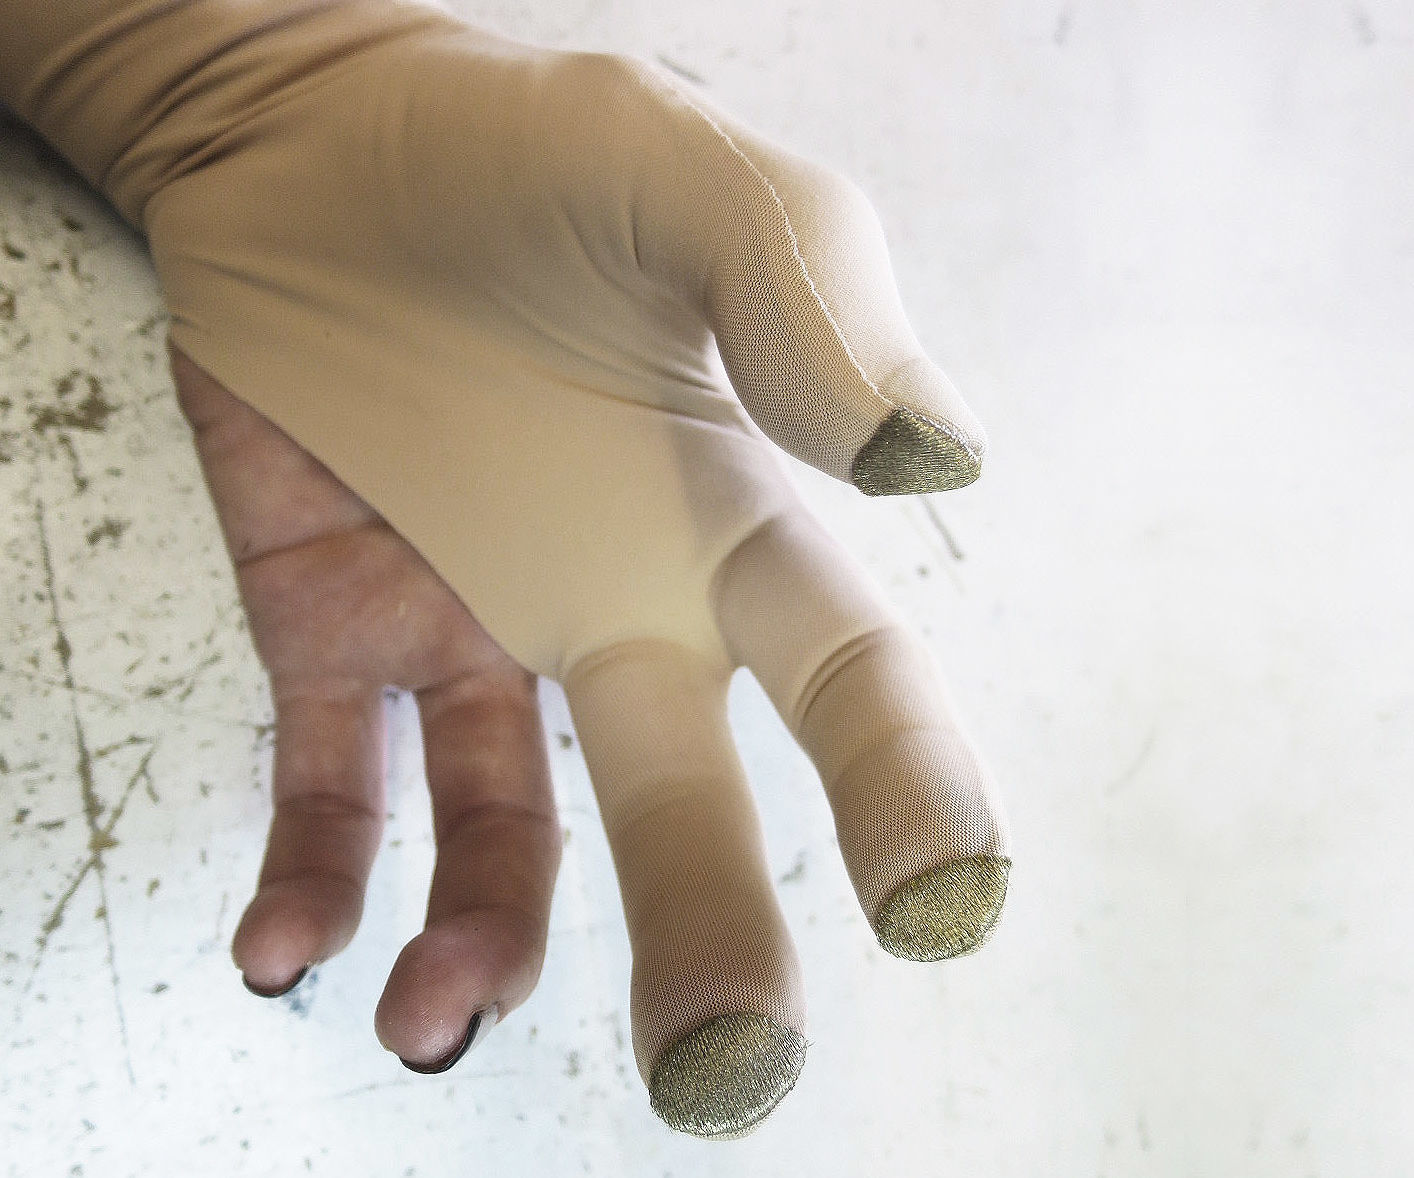 ETextile Glove With Conductive Fabric